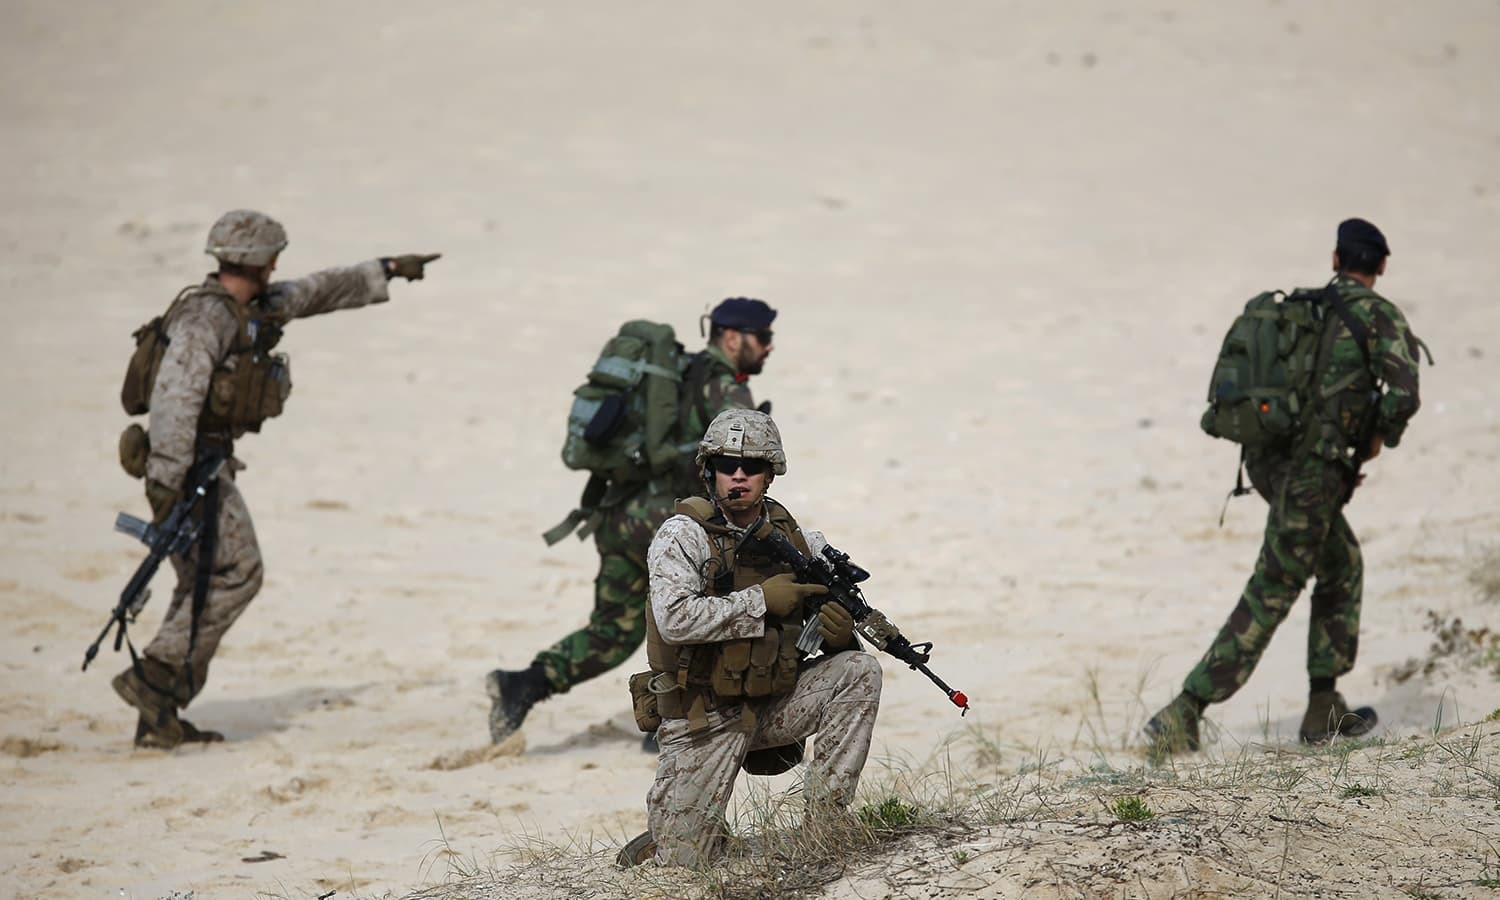 Prosecutor seeks probe of rights abuses by US personnel in Afghanistan